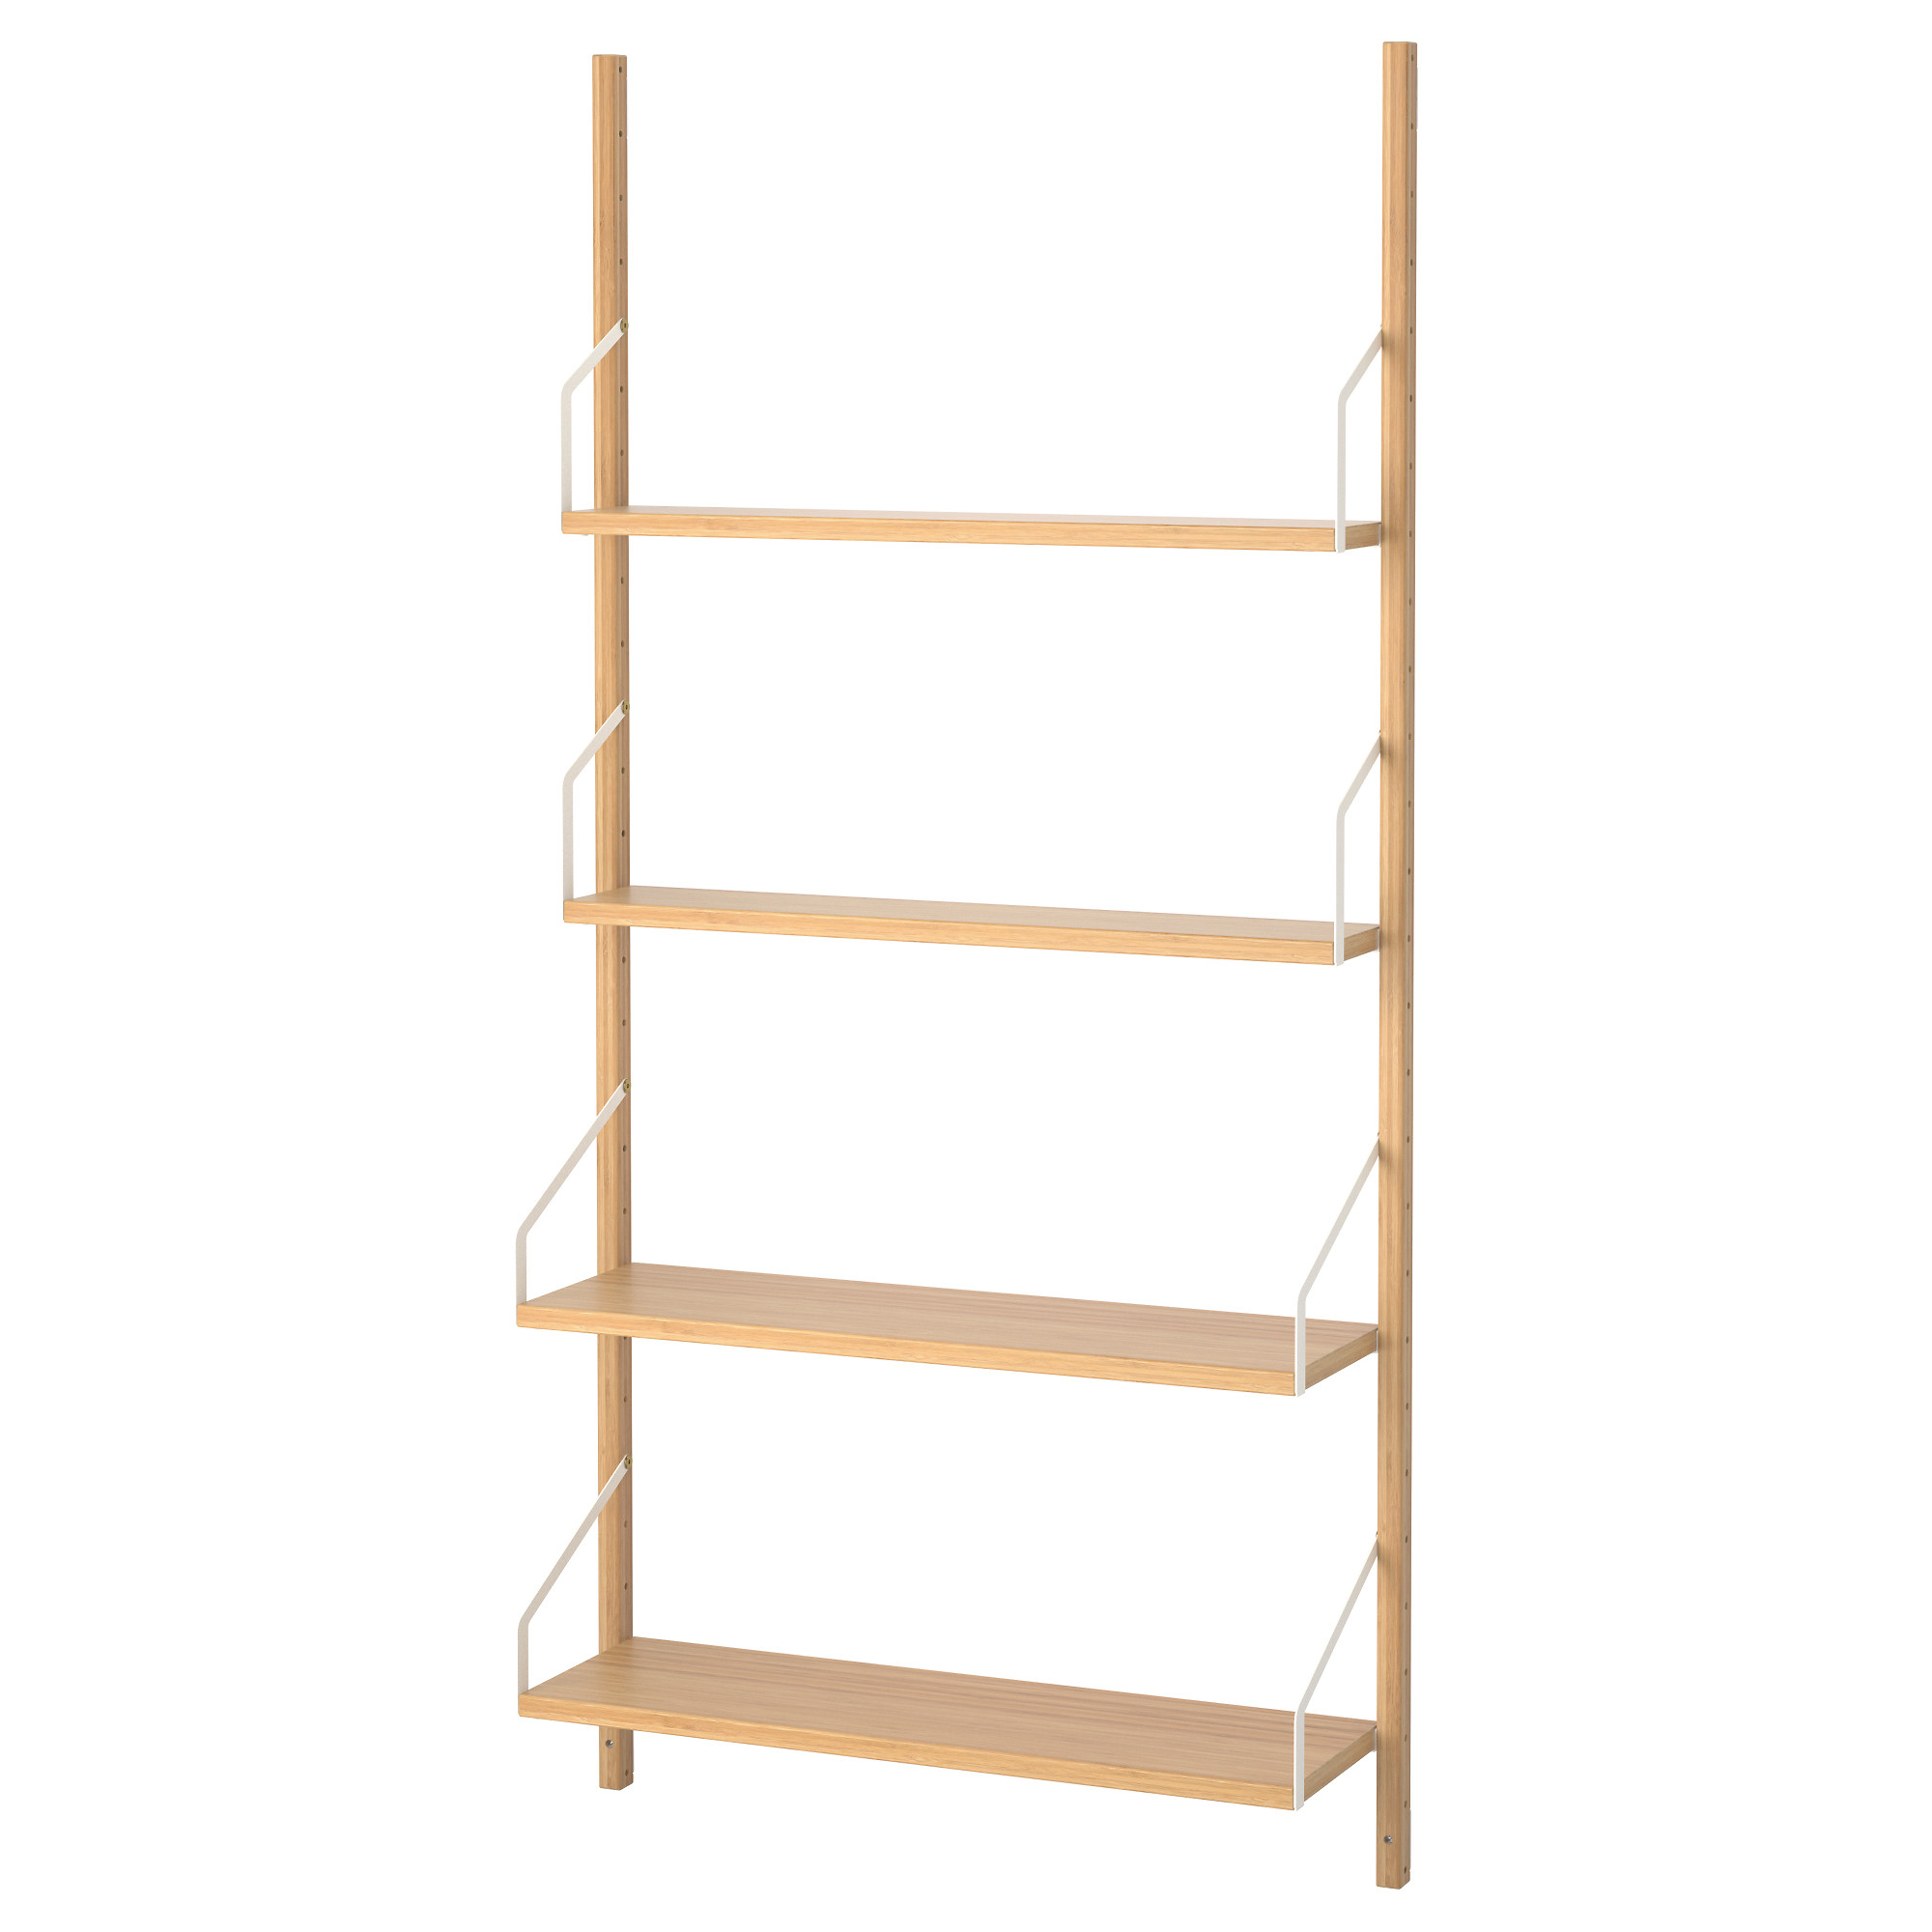 inch wide shelving unit shelves target wall mounted shelf combination bamboo ikea kallax bookcase ideas svalns wallmounted expedit instructions bookshelves floating cubes cube